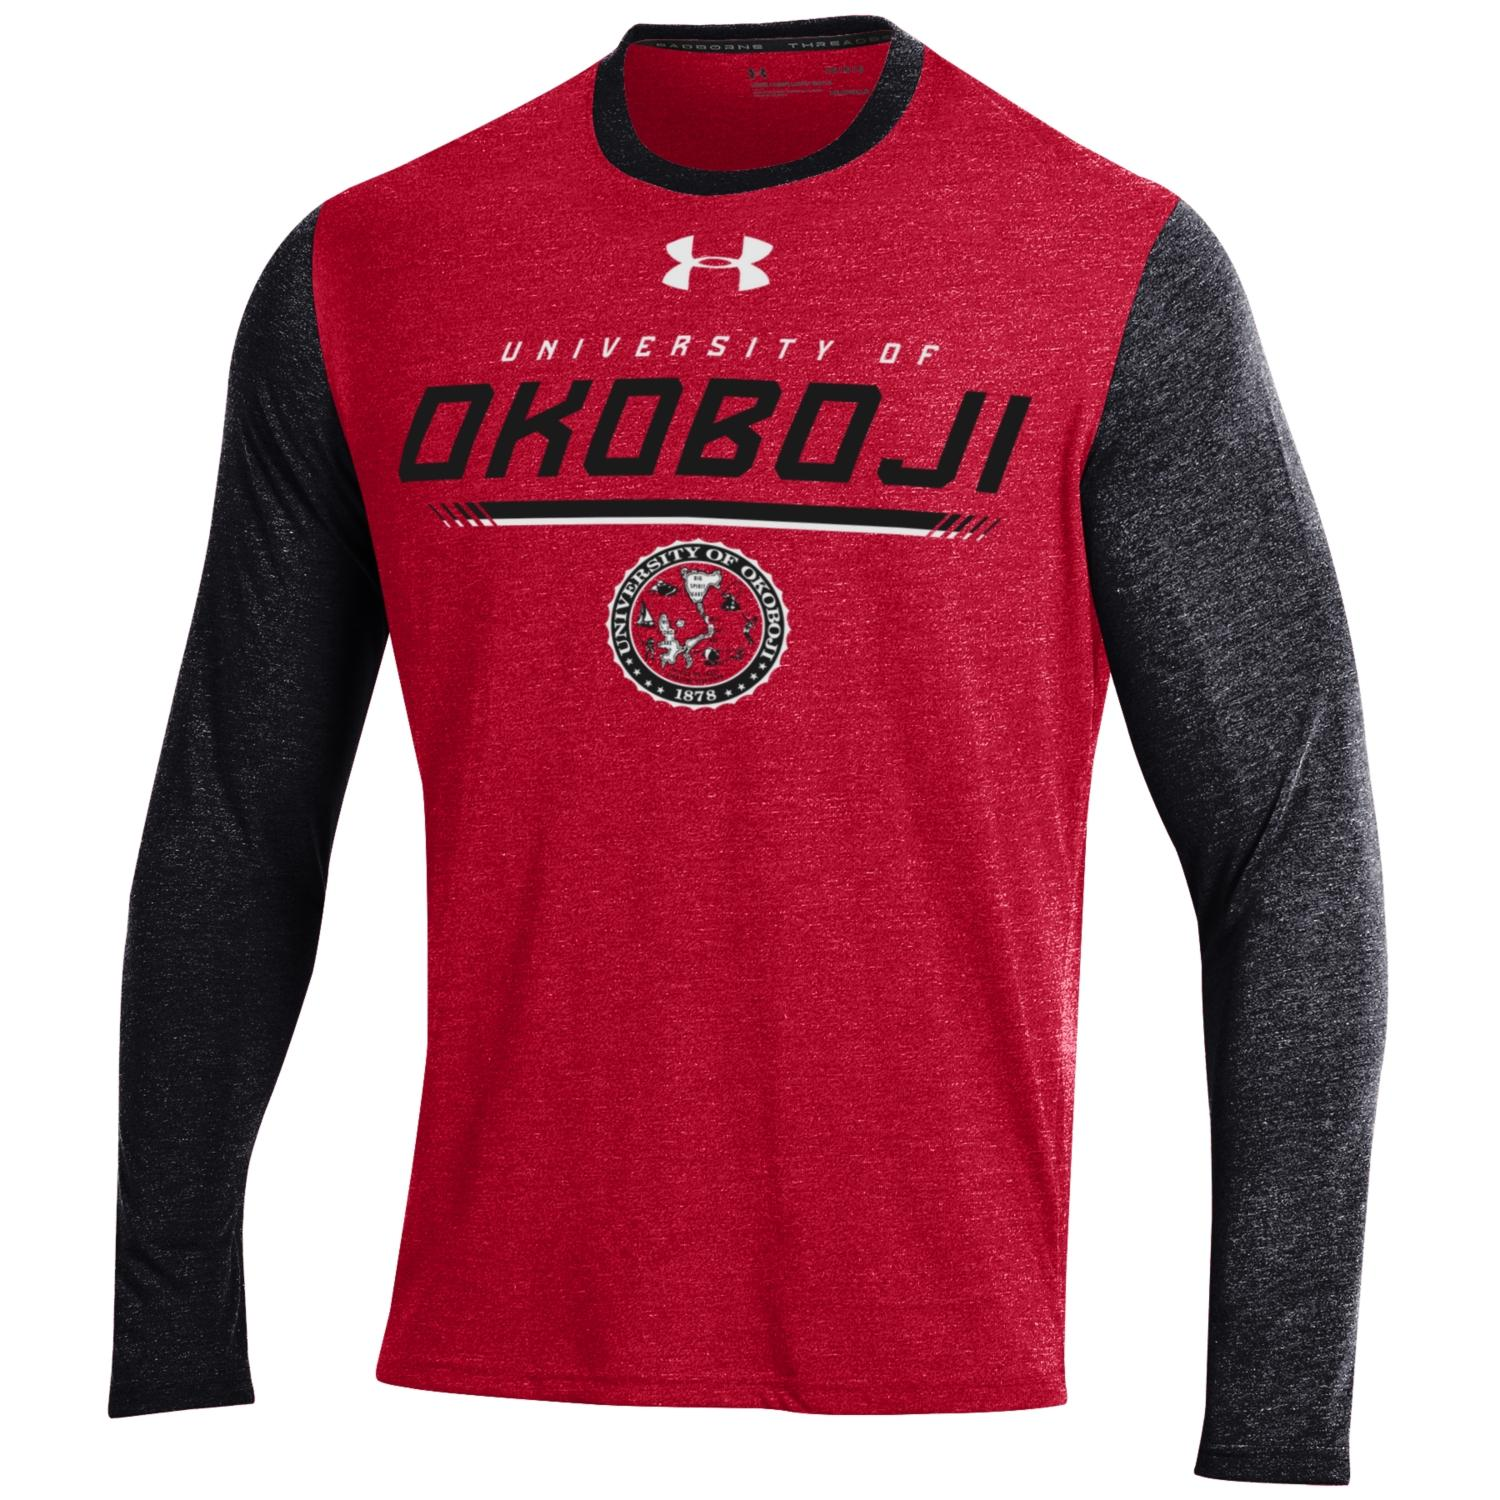 Okoboji Threadborne LS Tee - Red/Black